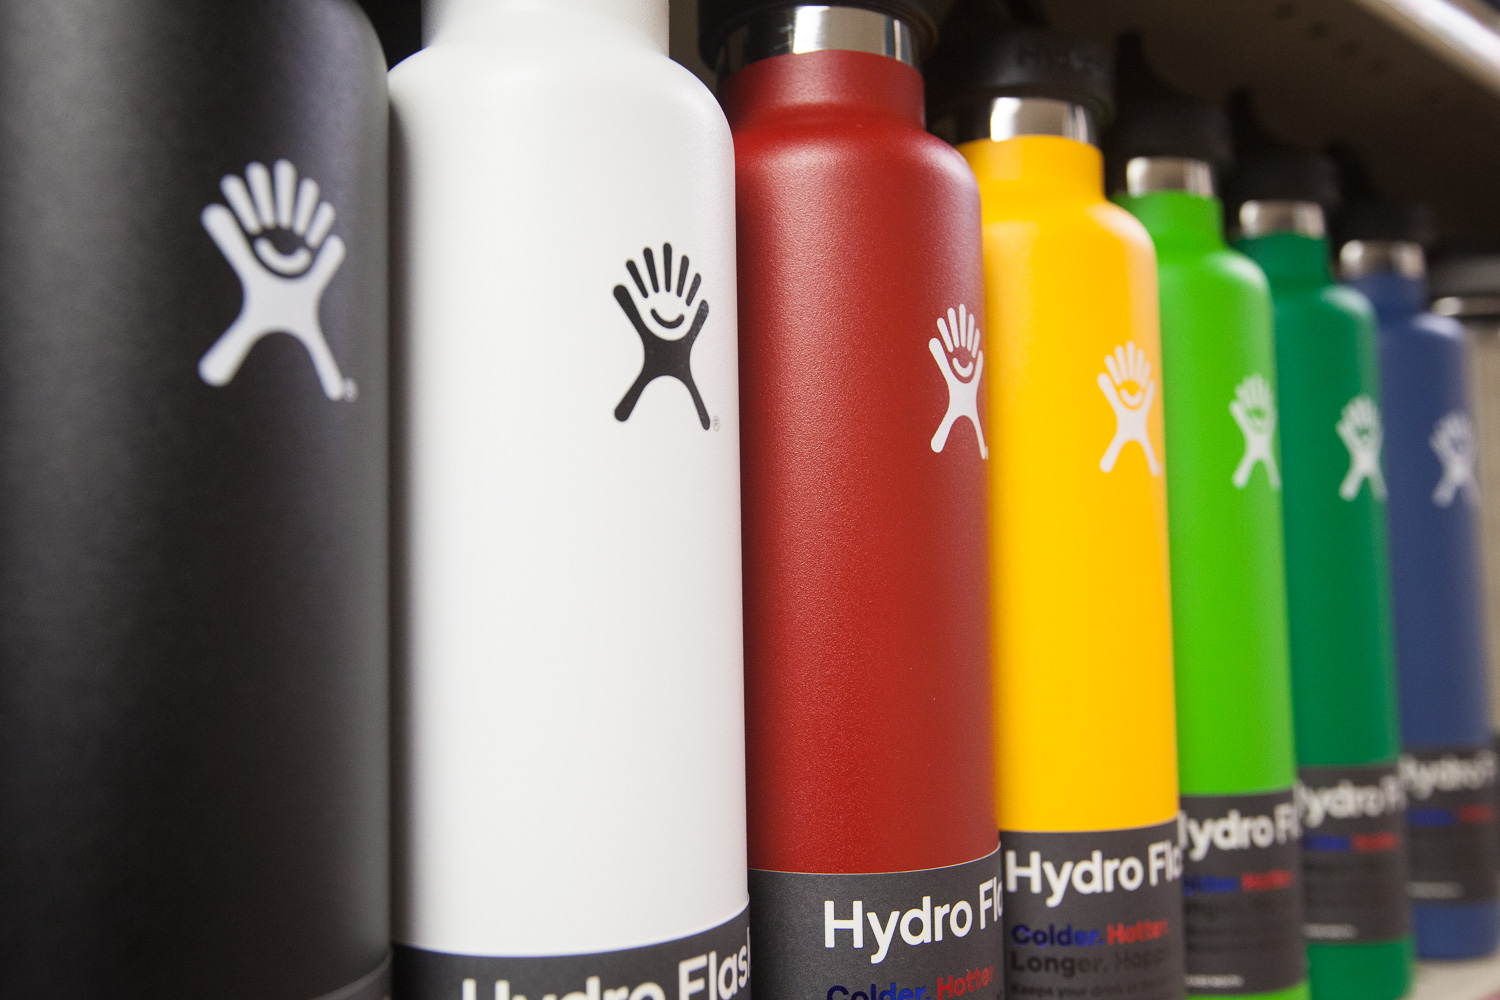 large-hydro-flasks-mana-foods-gifts-household-department.jpg